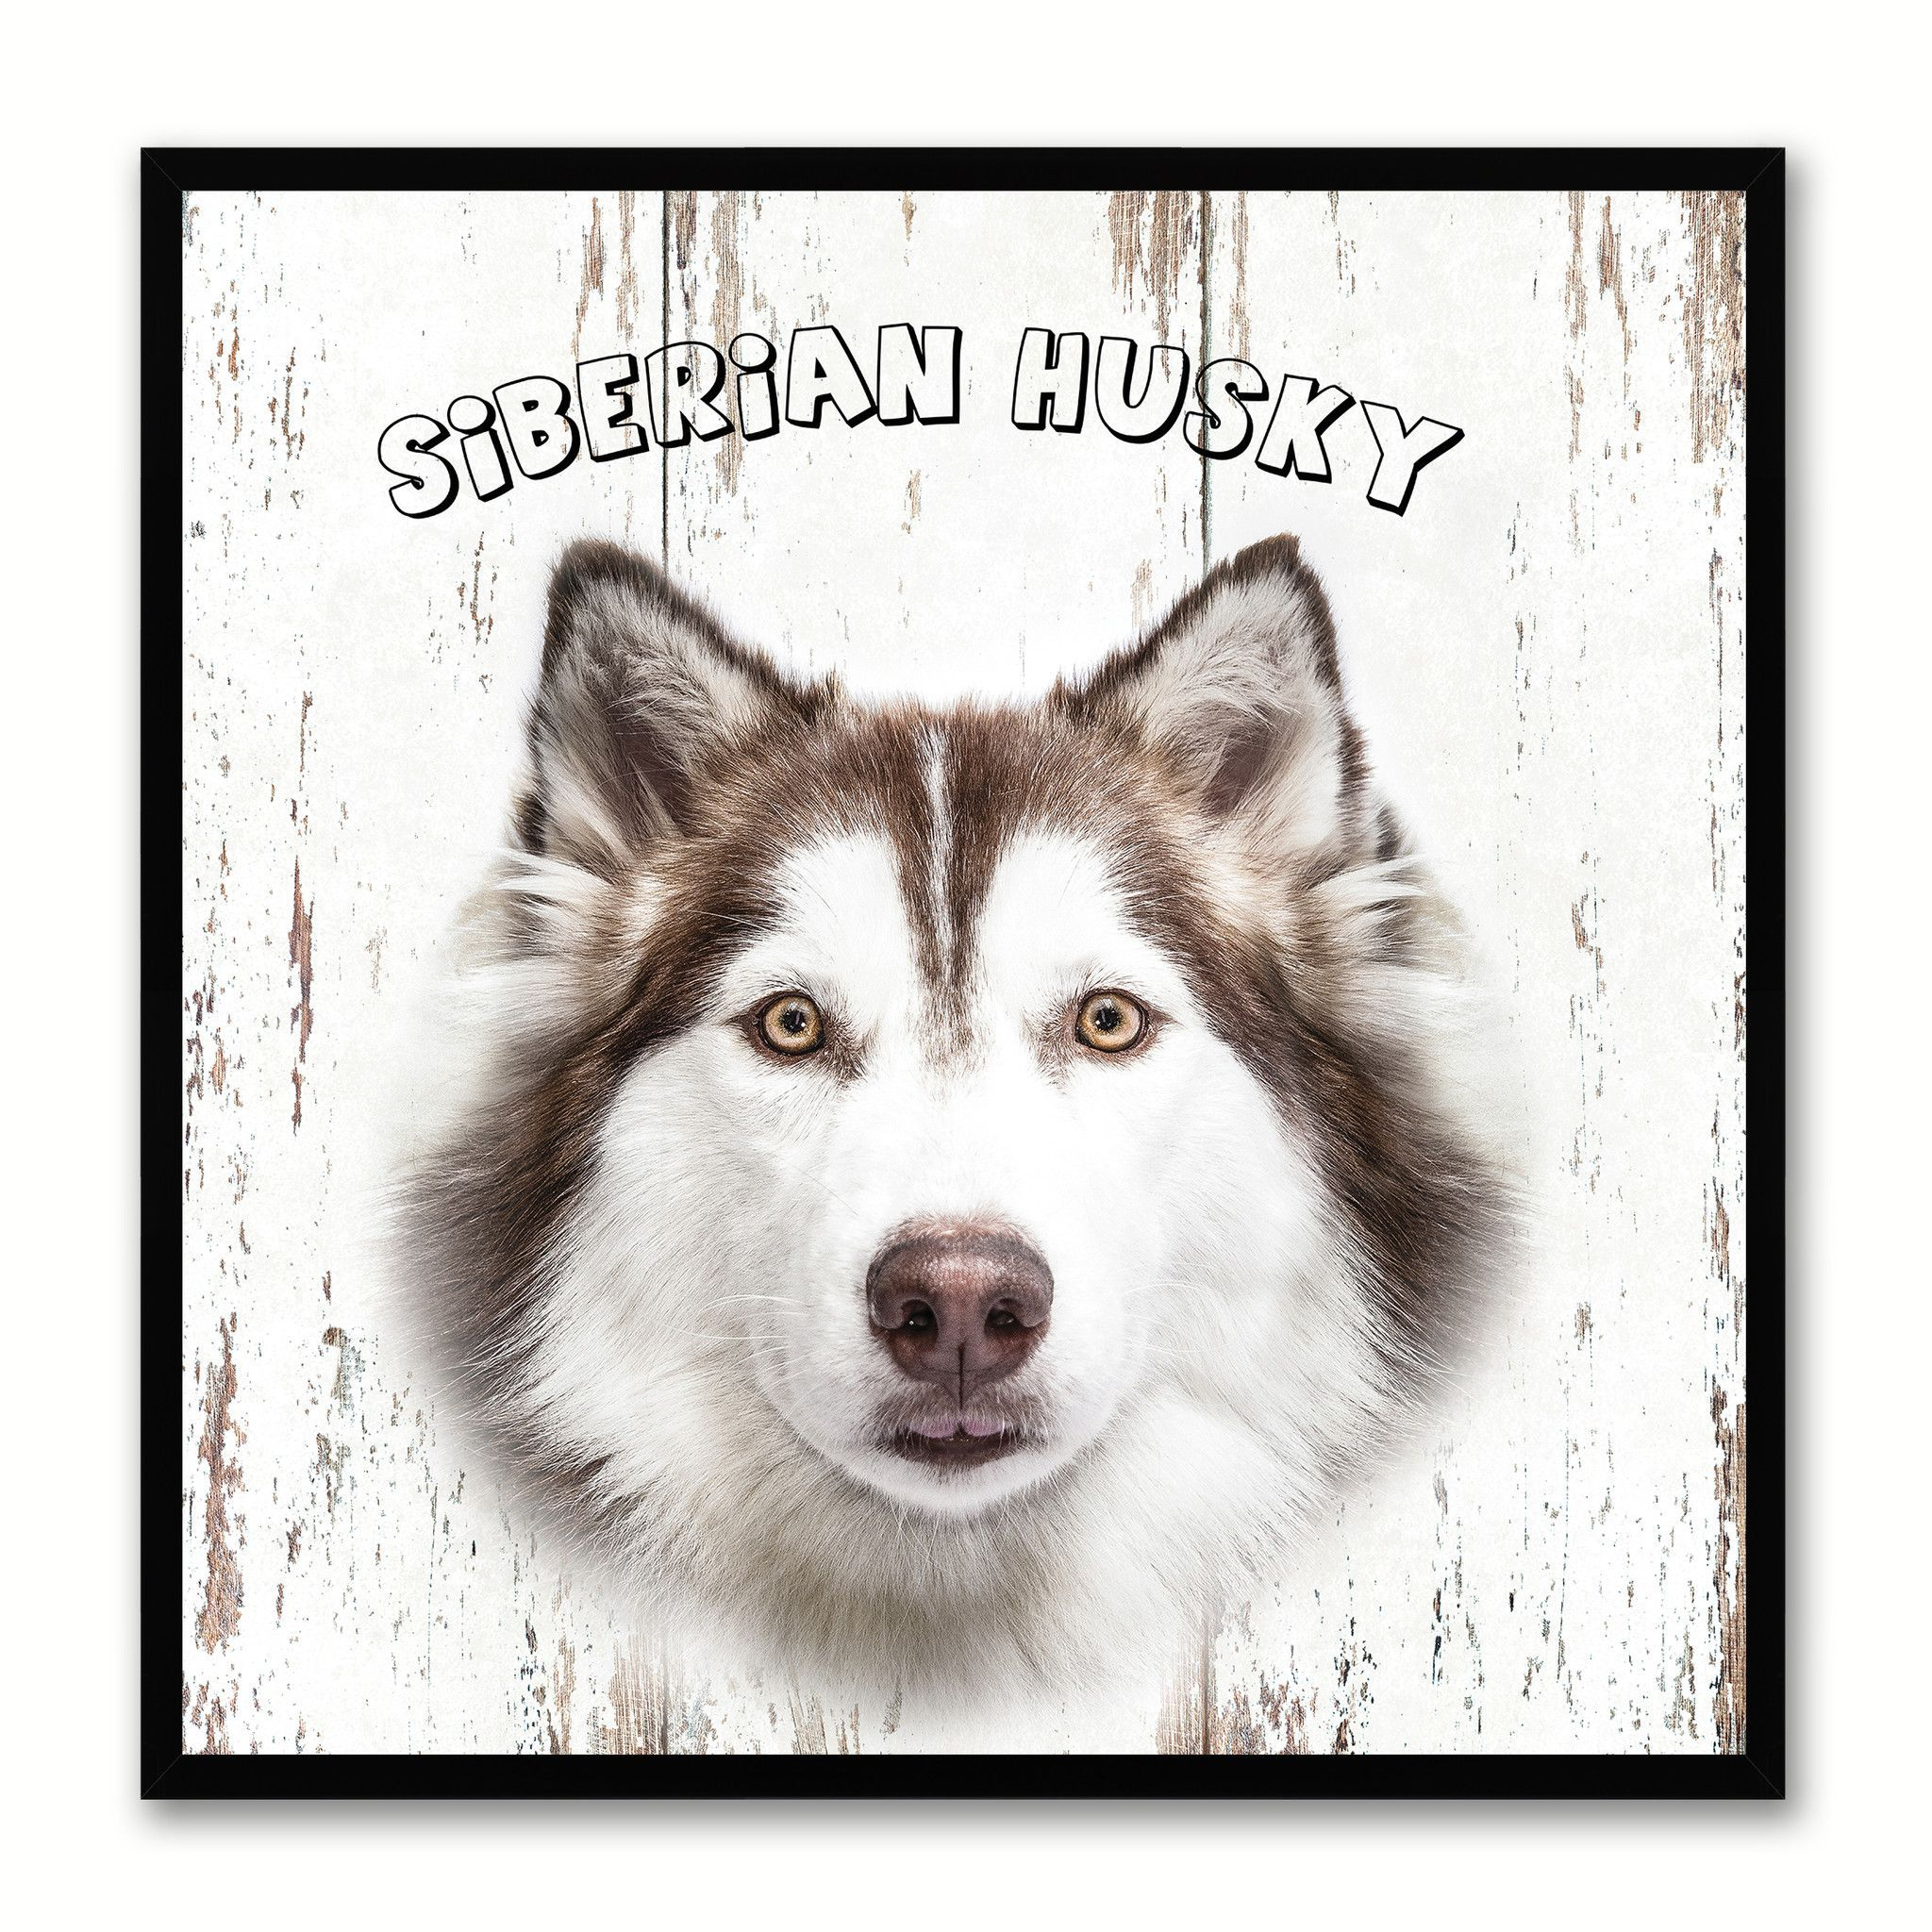 Siberian Husky Dog Canvas Print Picture Frame Gift Home Decor Wall